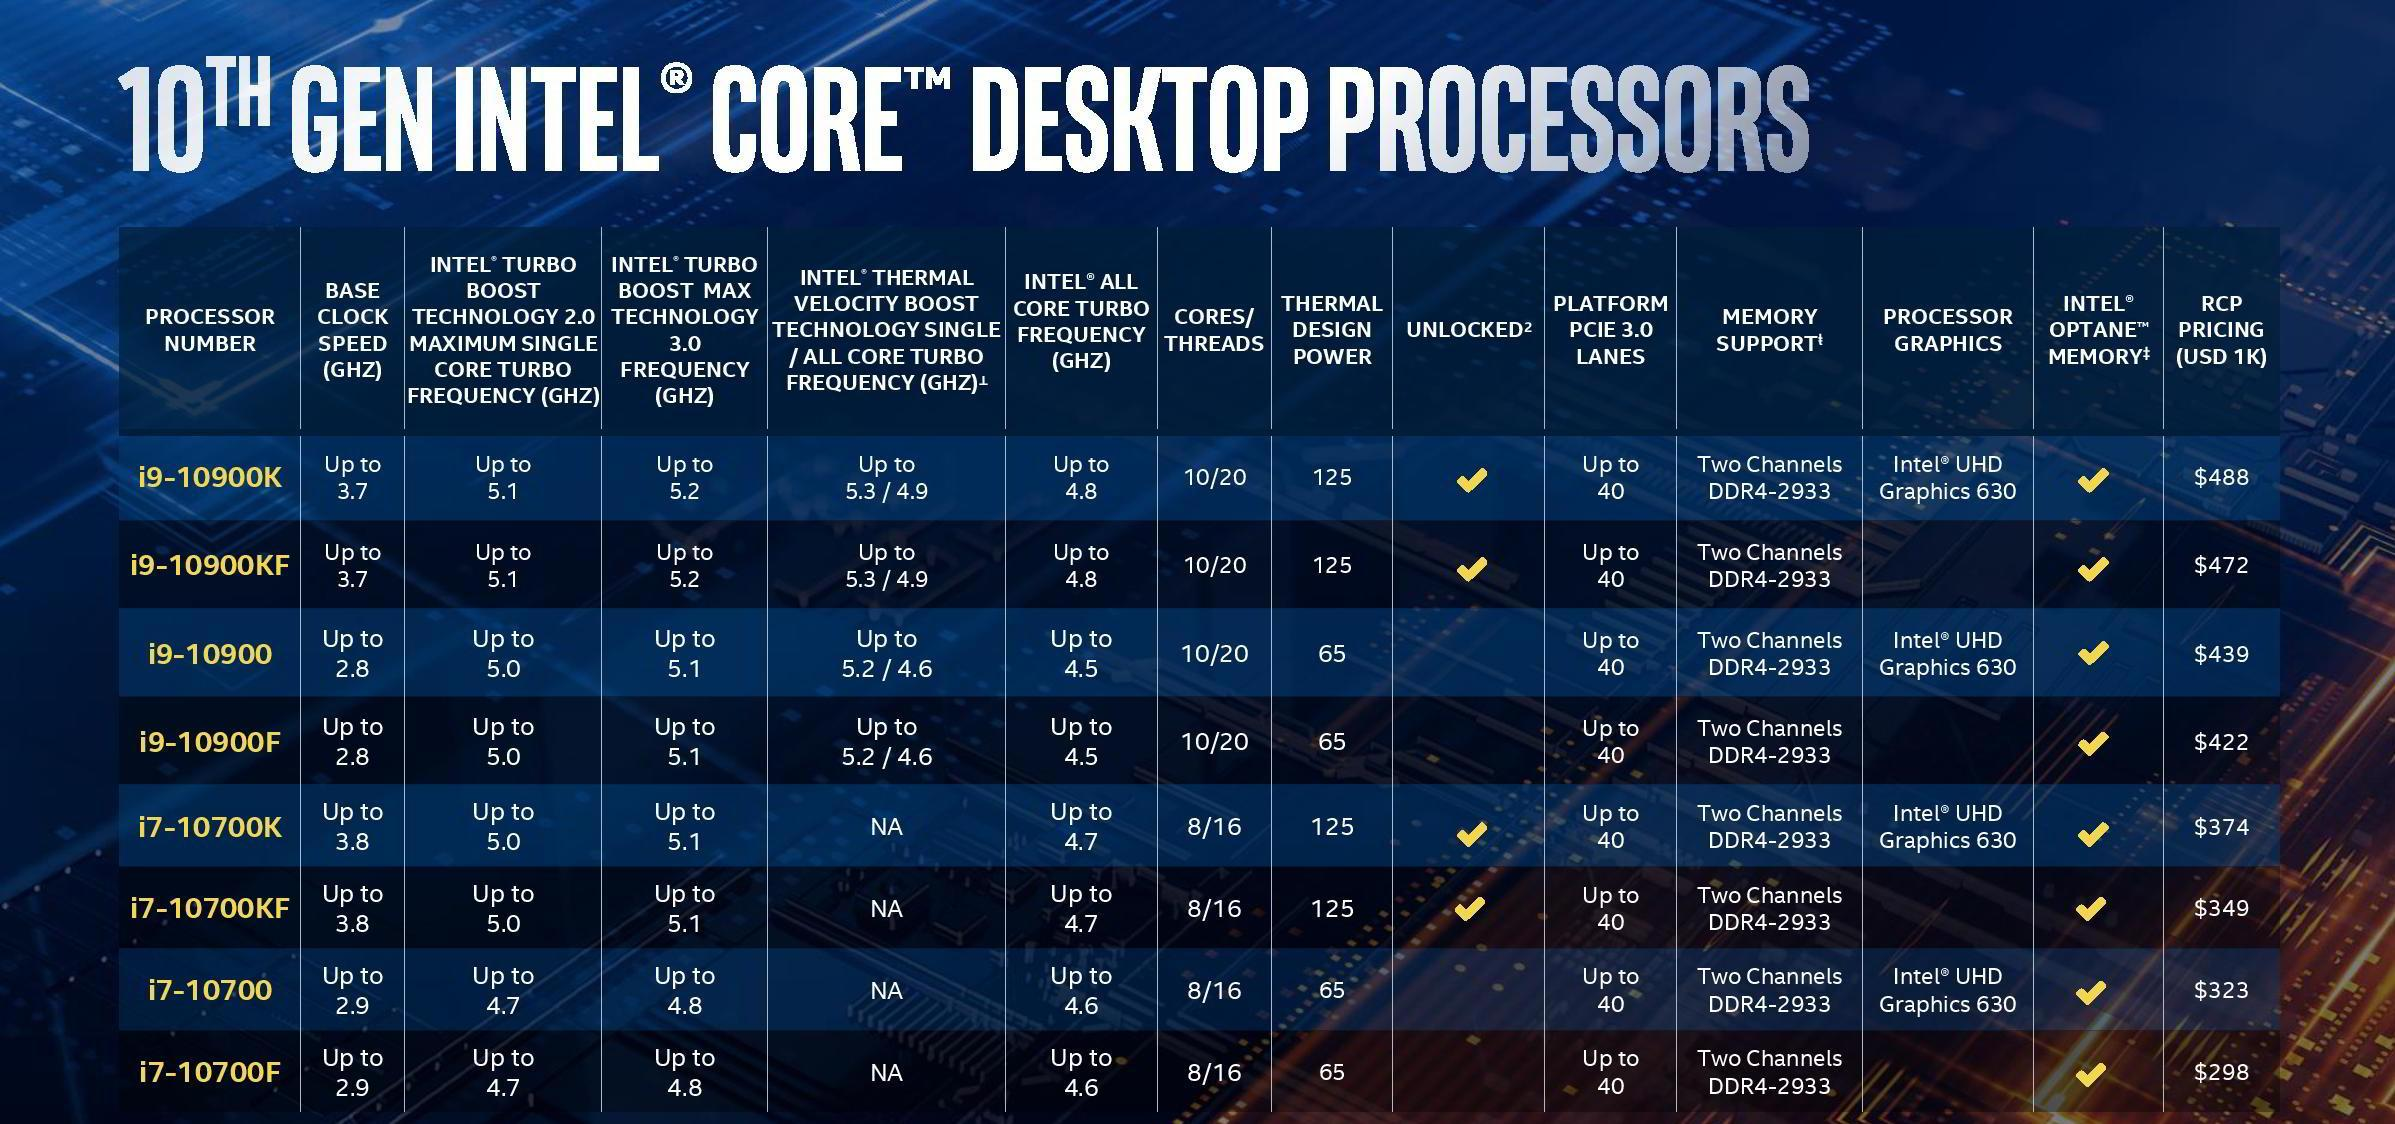 10th-gen-intel-core-desktop-chart-2.jpg